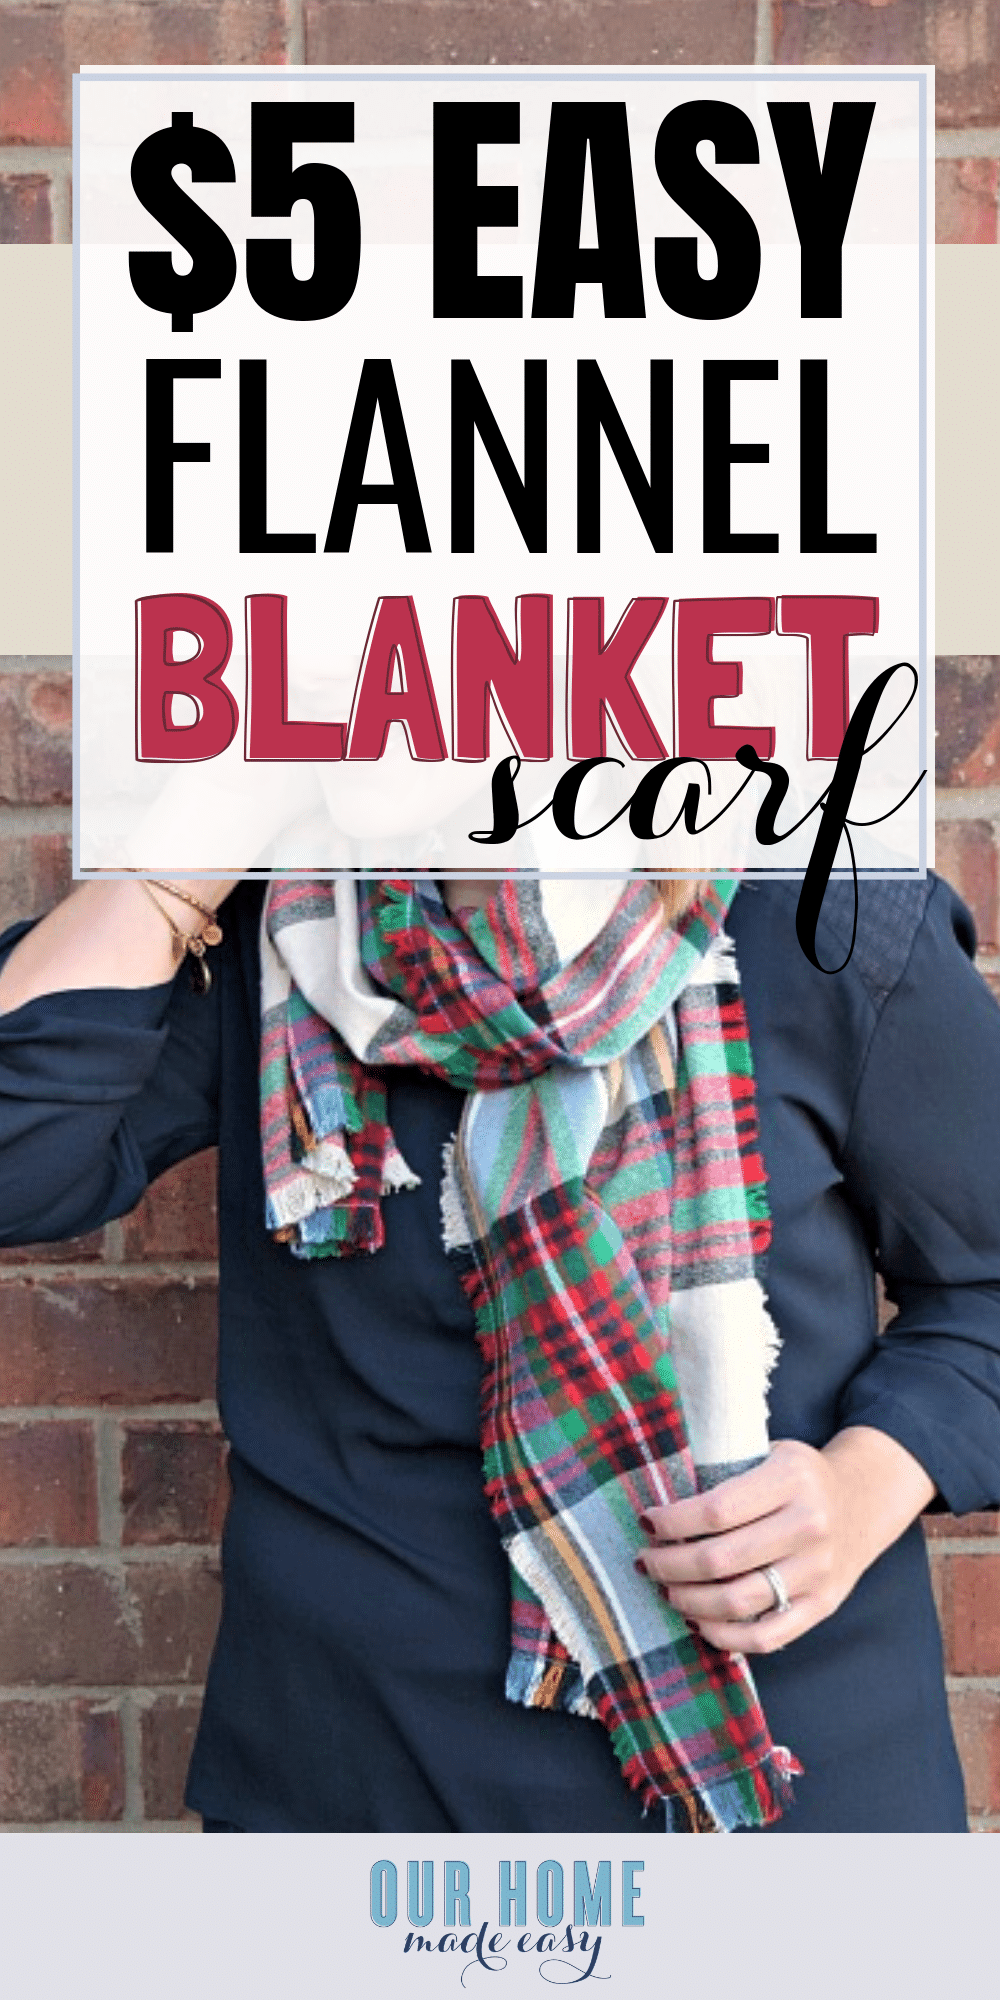 DIY blanket flannel scarf for under $5! You can adjust the size & choose your favorite pattern. Click to see how easy it is to make! #fall #clothing #scarf #flannel #sewing